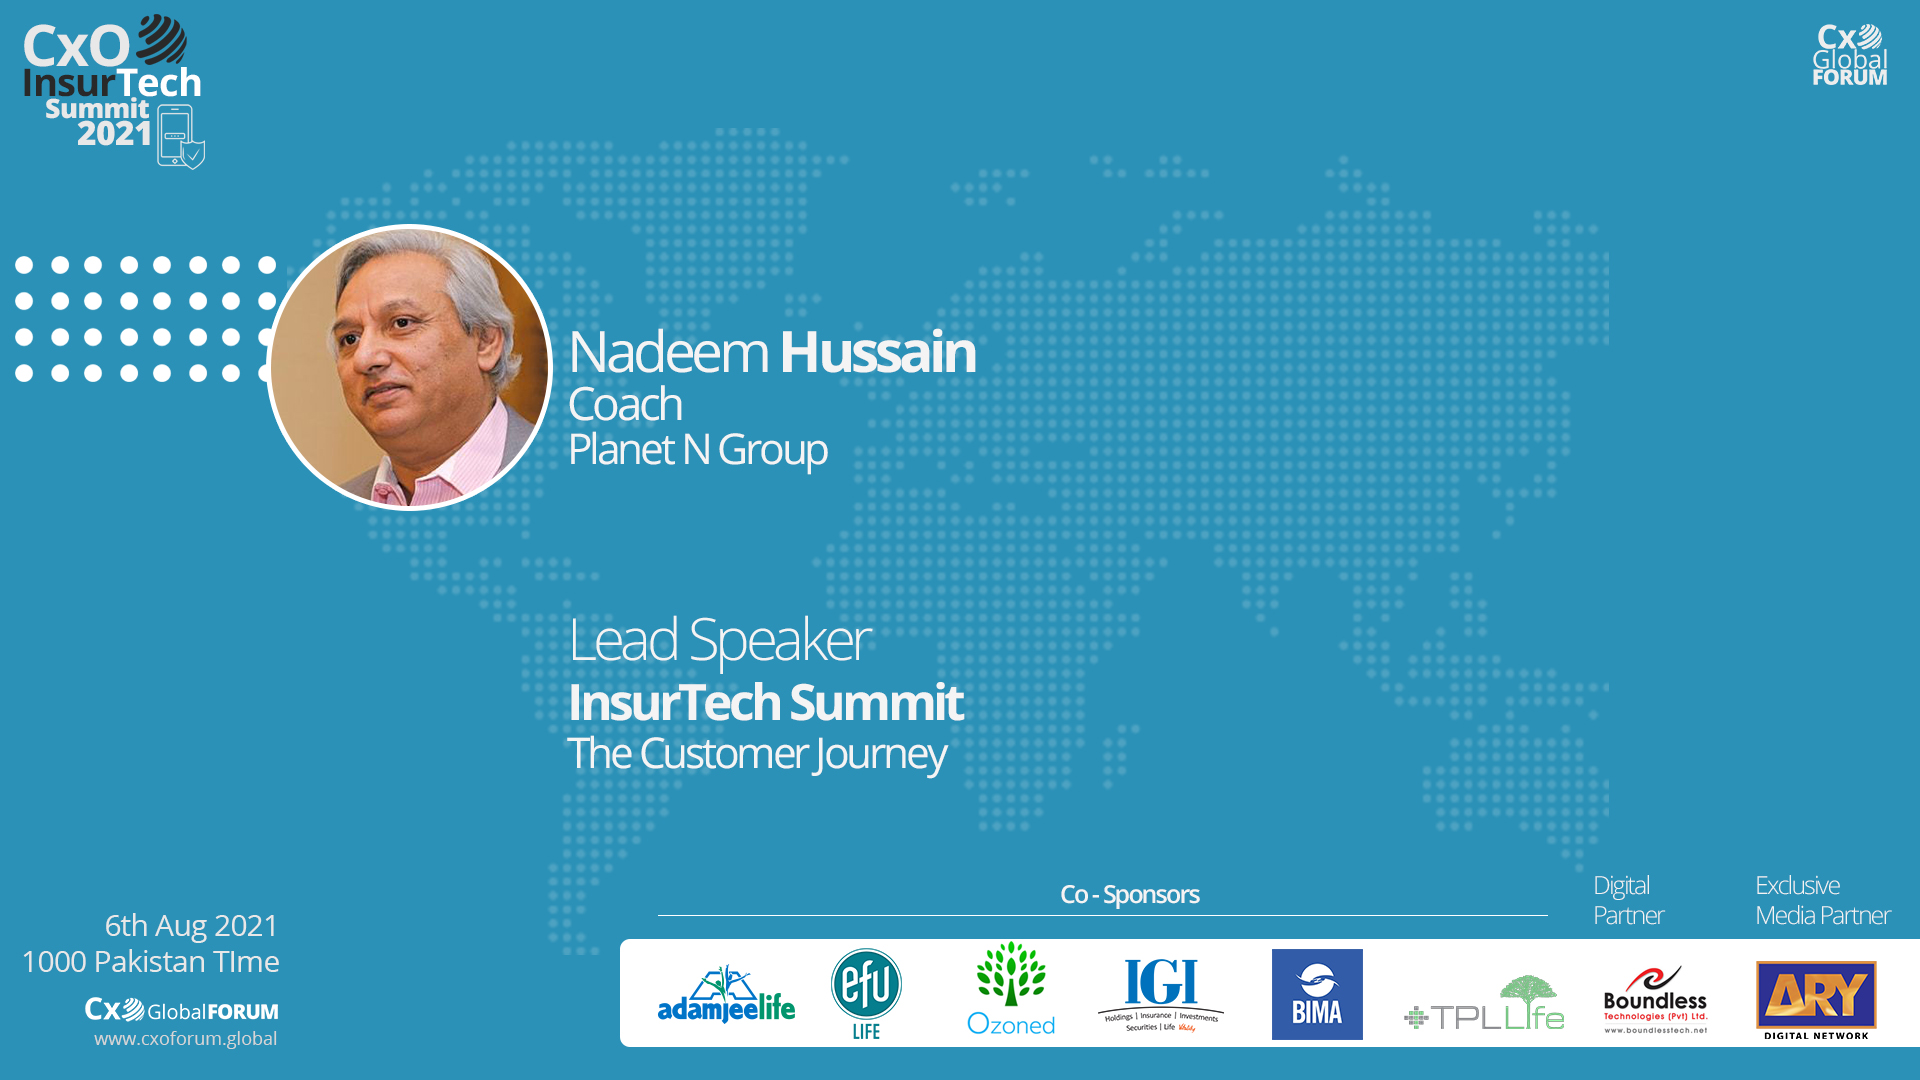 Lead Session by Nadeem Hussain